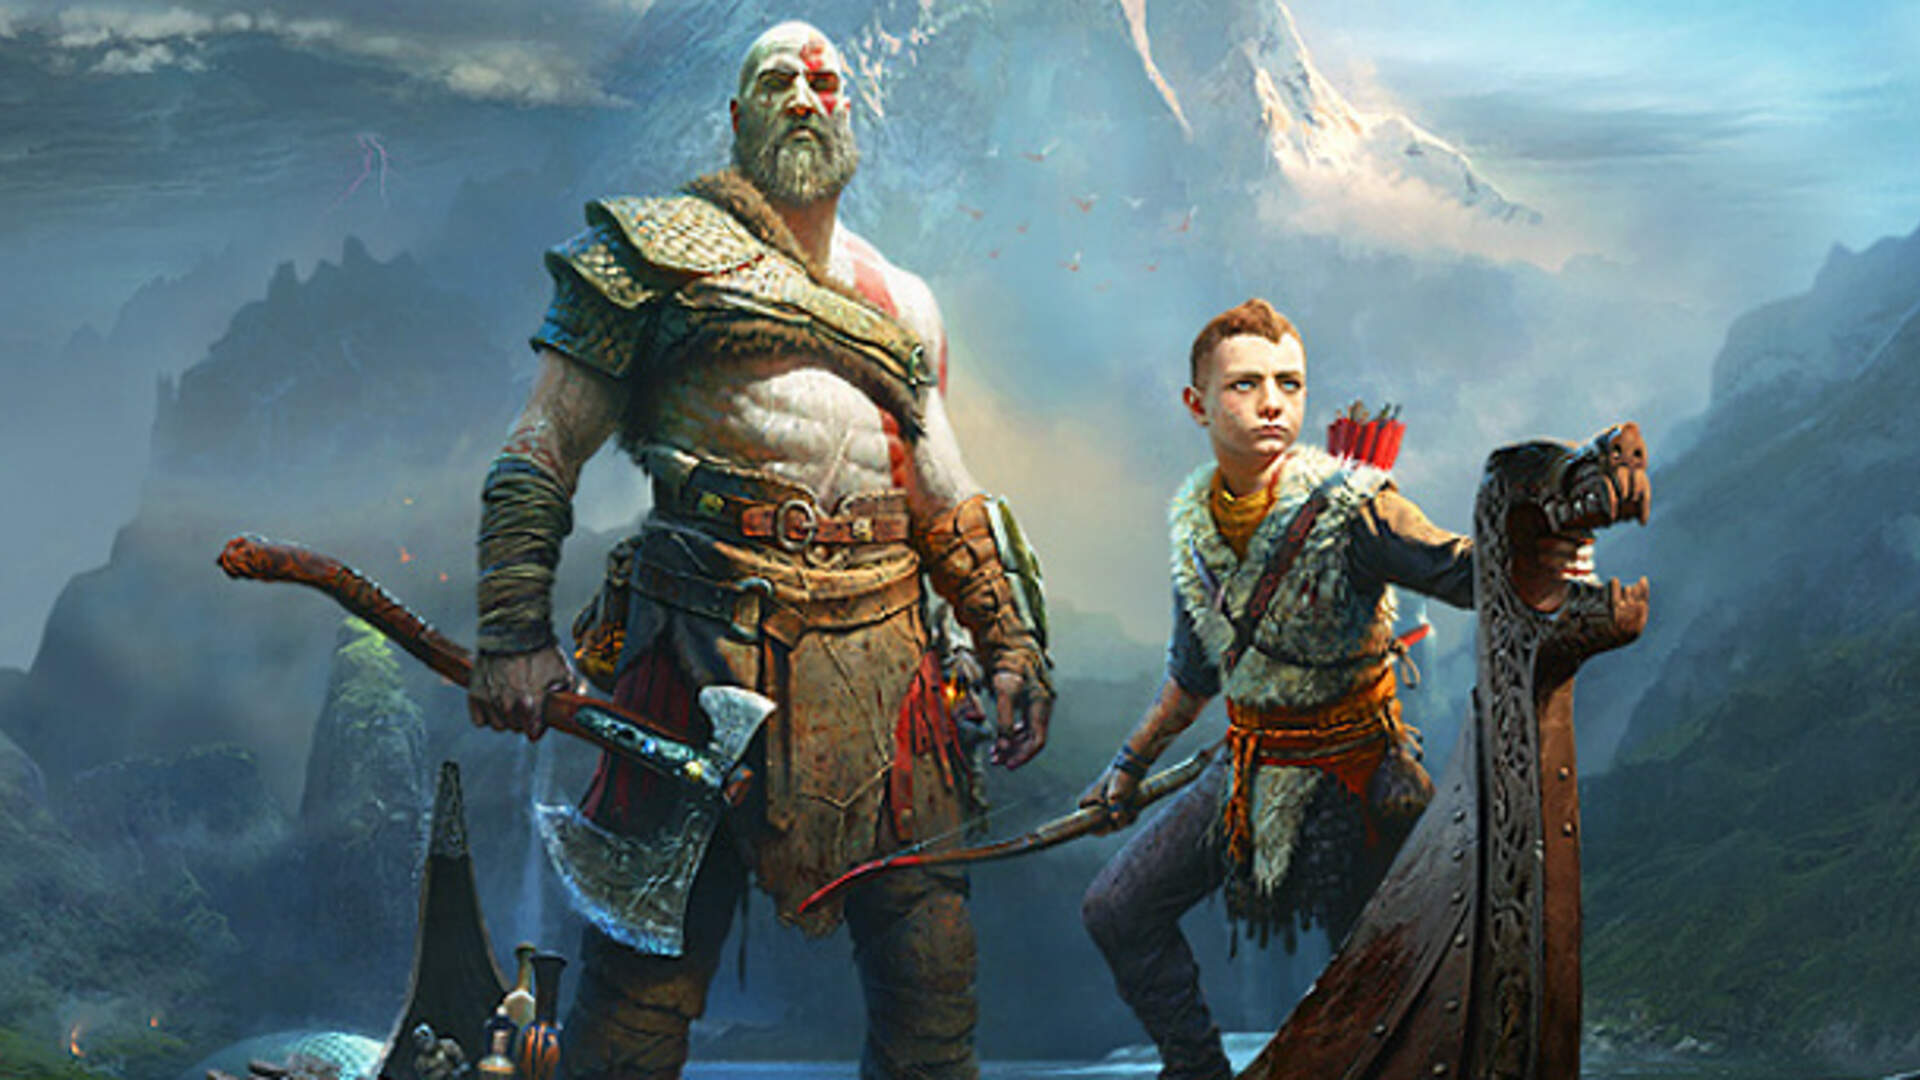 Future God of War Games May Center Around Egyptian or Mayan Myth